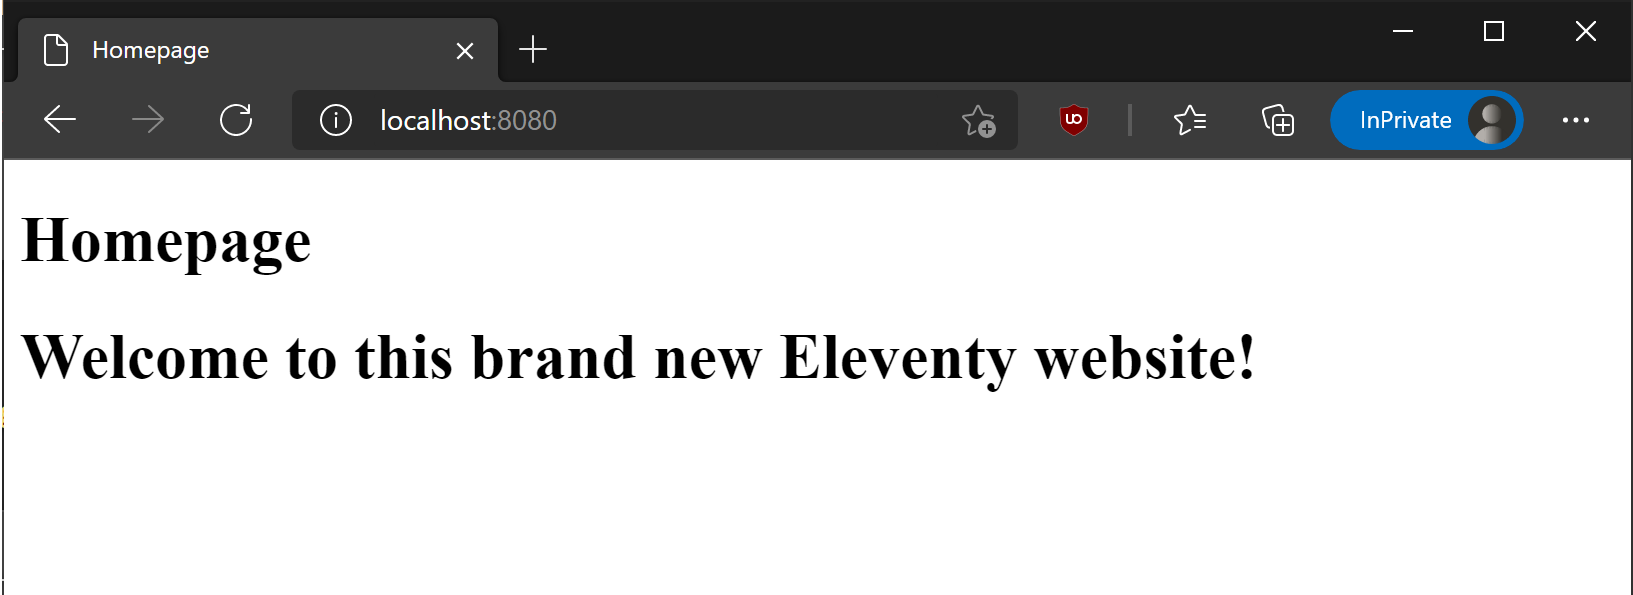 Eleventy homepage in action